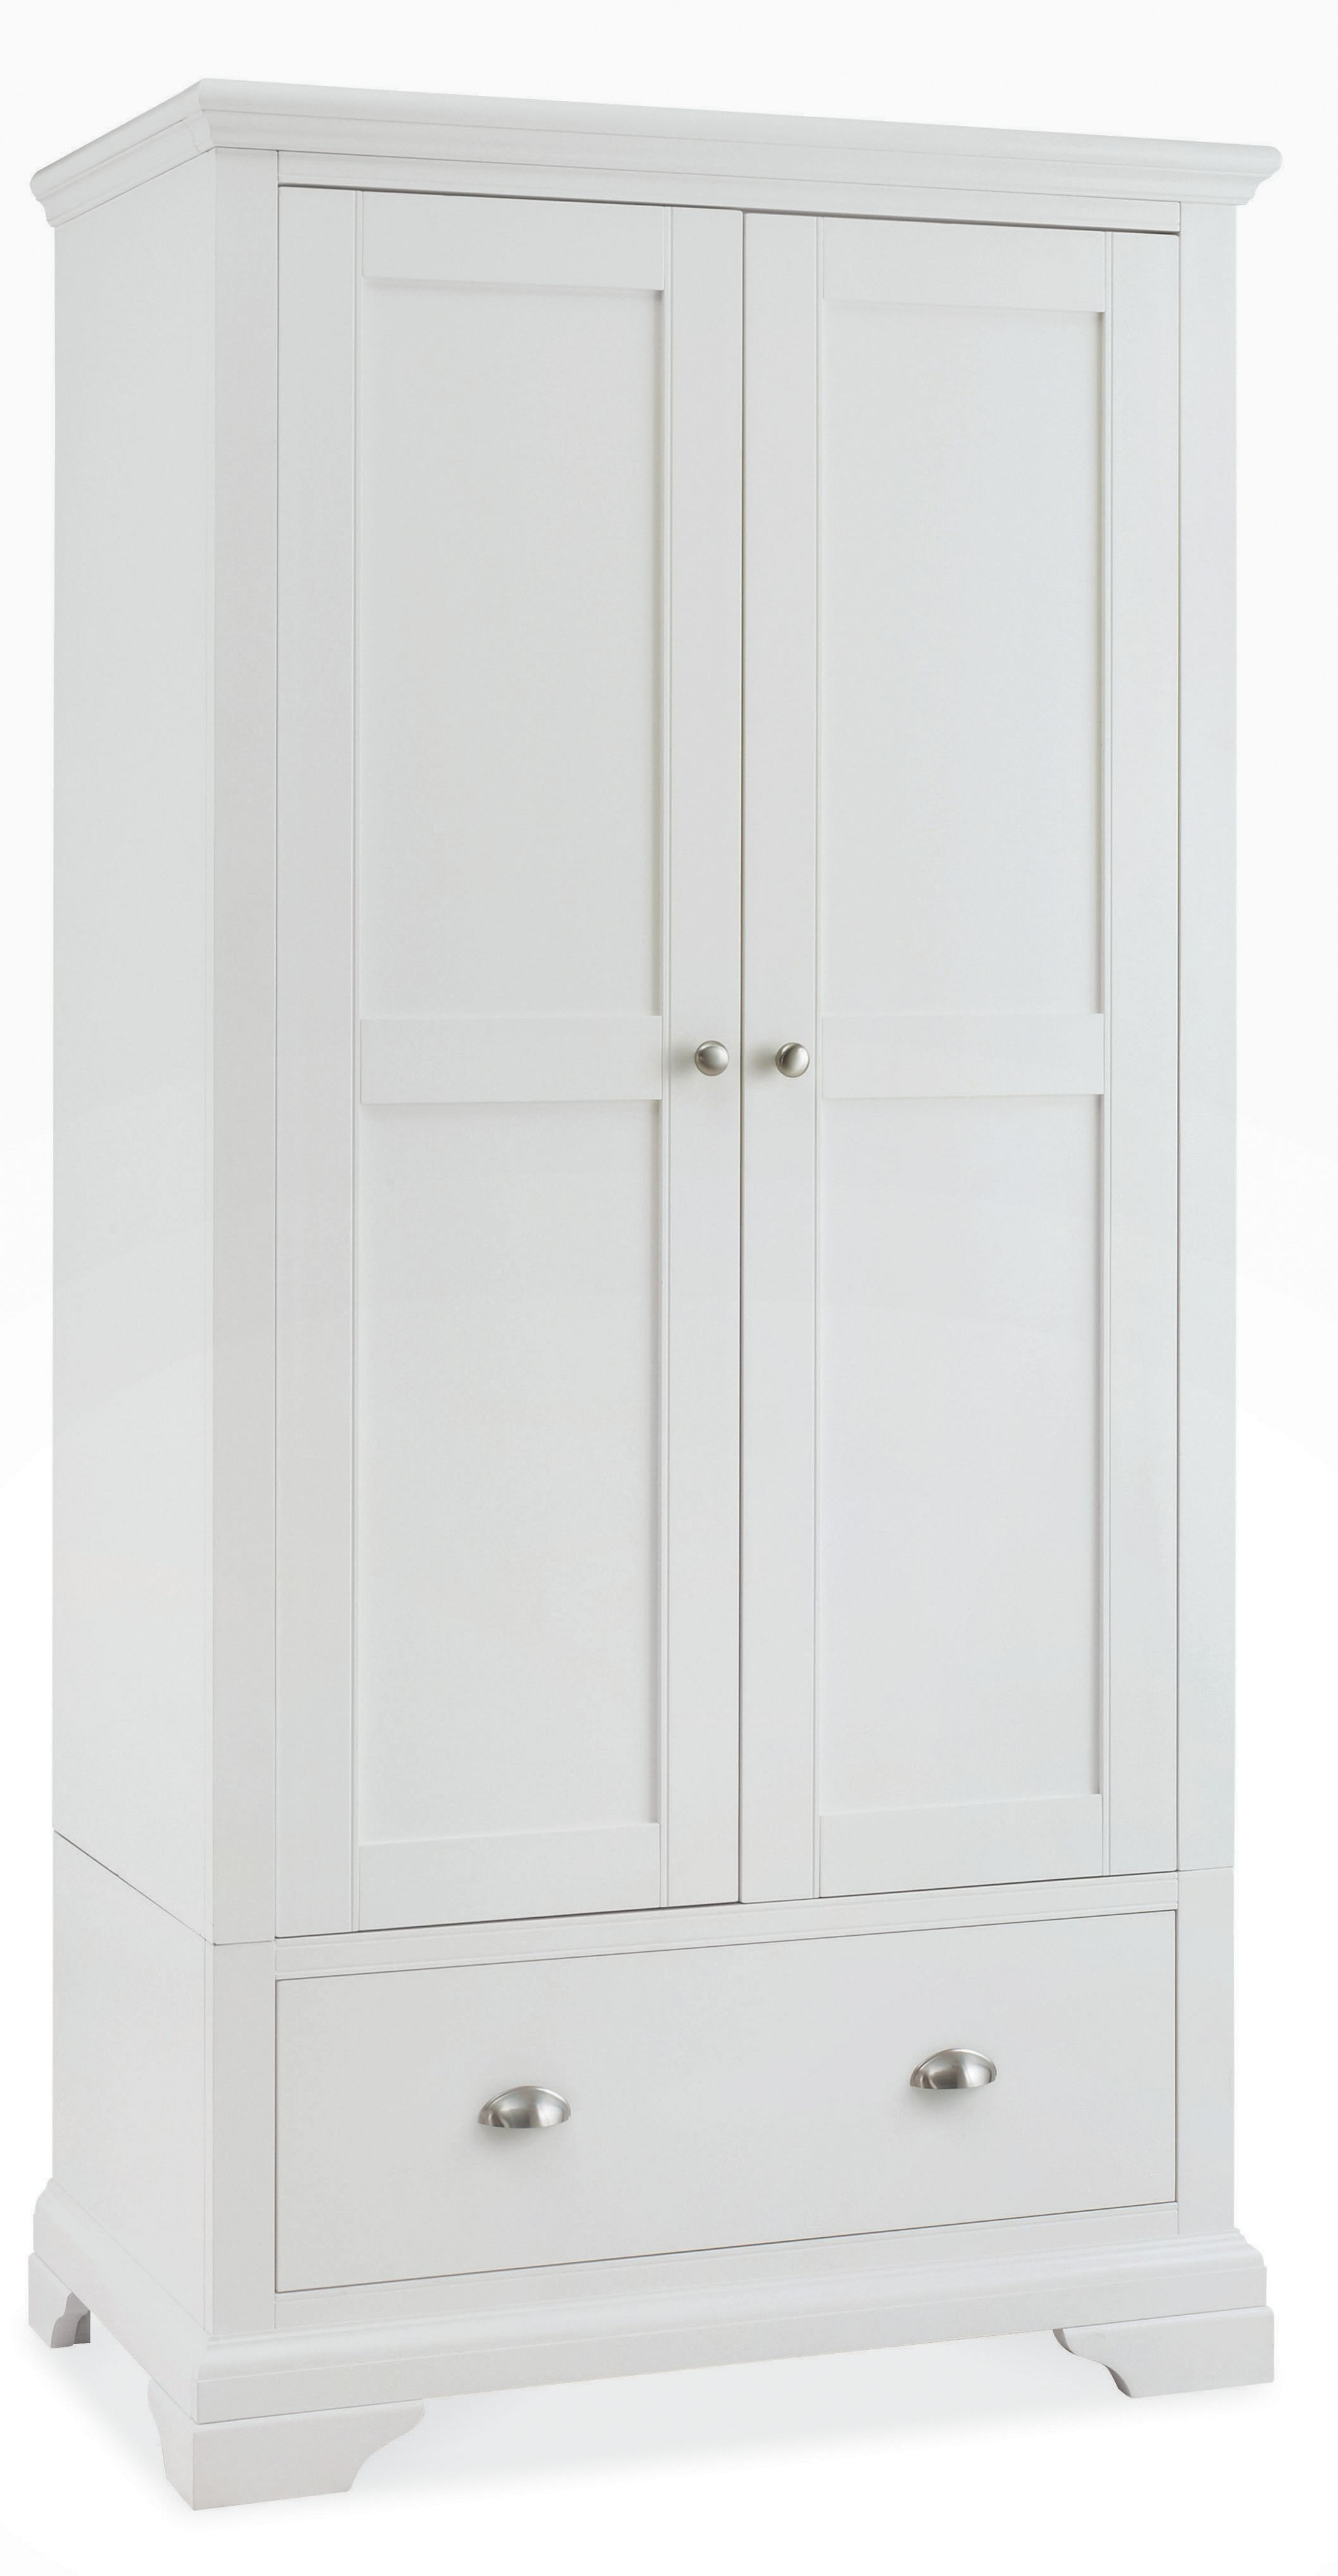 white wardrobes linea etienne white double wardrobe with drawer - house of fraser SBWMKAY